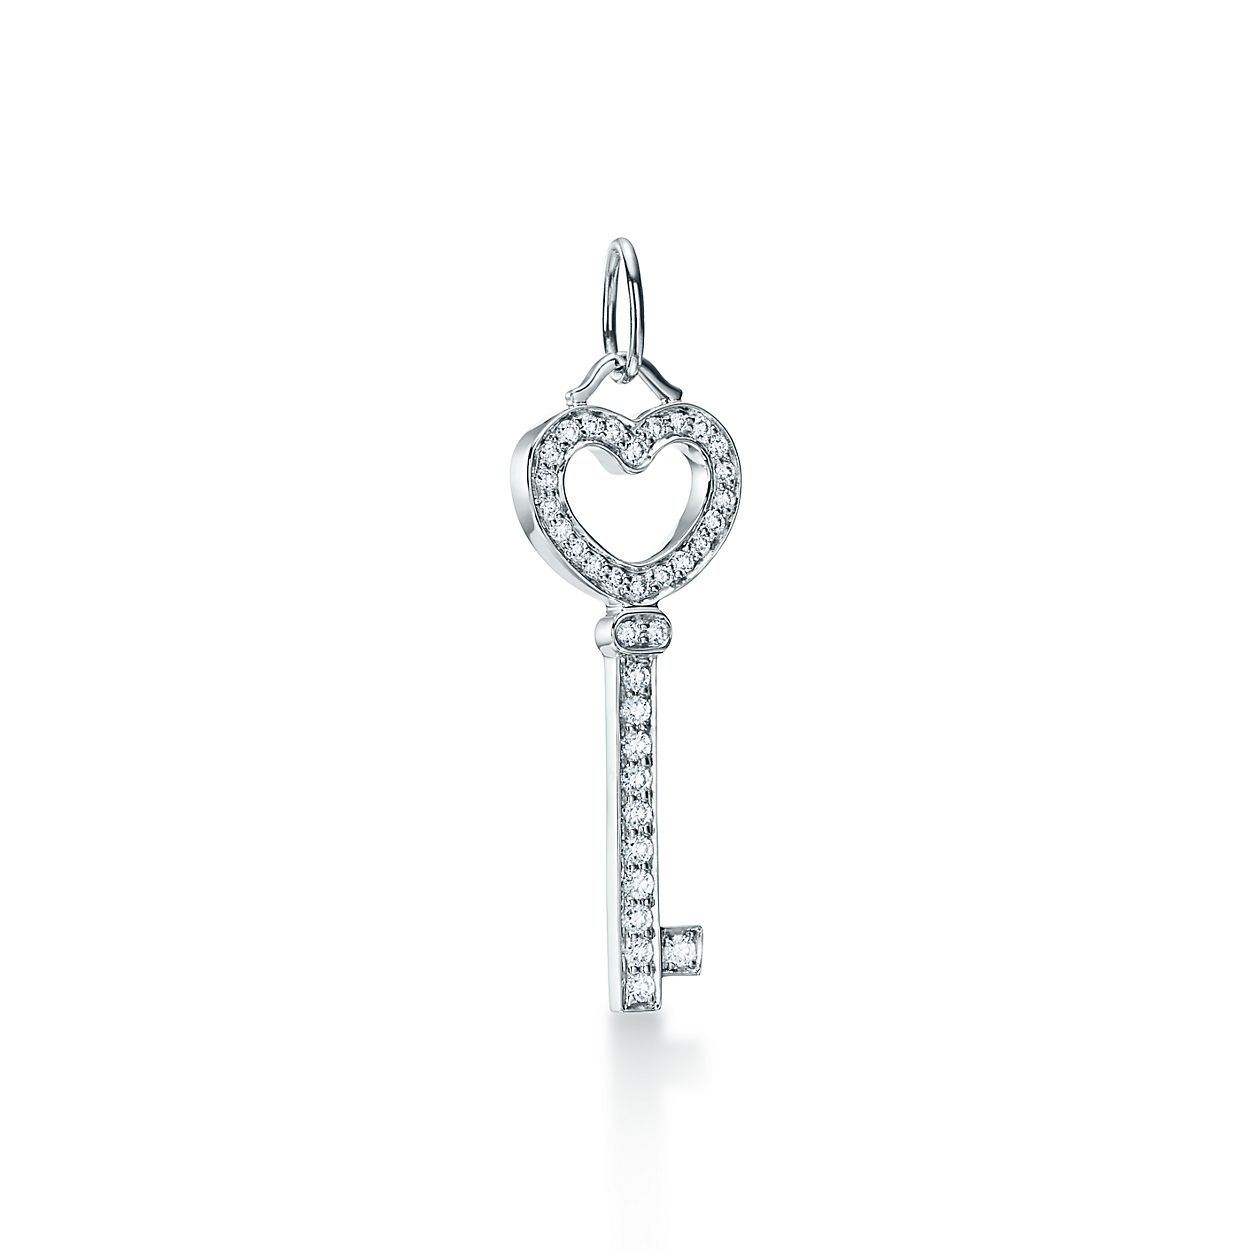 Tiffany keys heart key pendant in platinum with diamonds mini tiffany keysheart key pendant mozeypictures Image collections